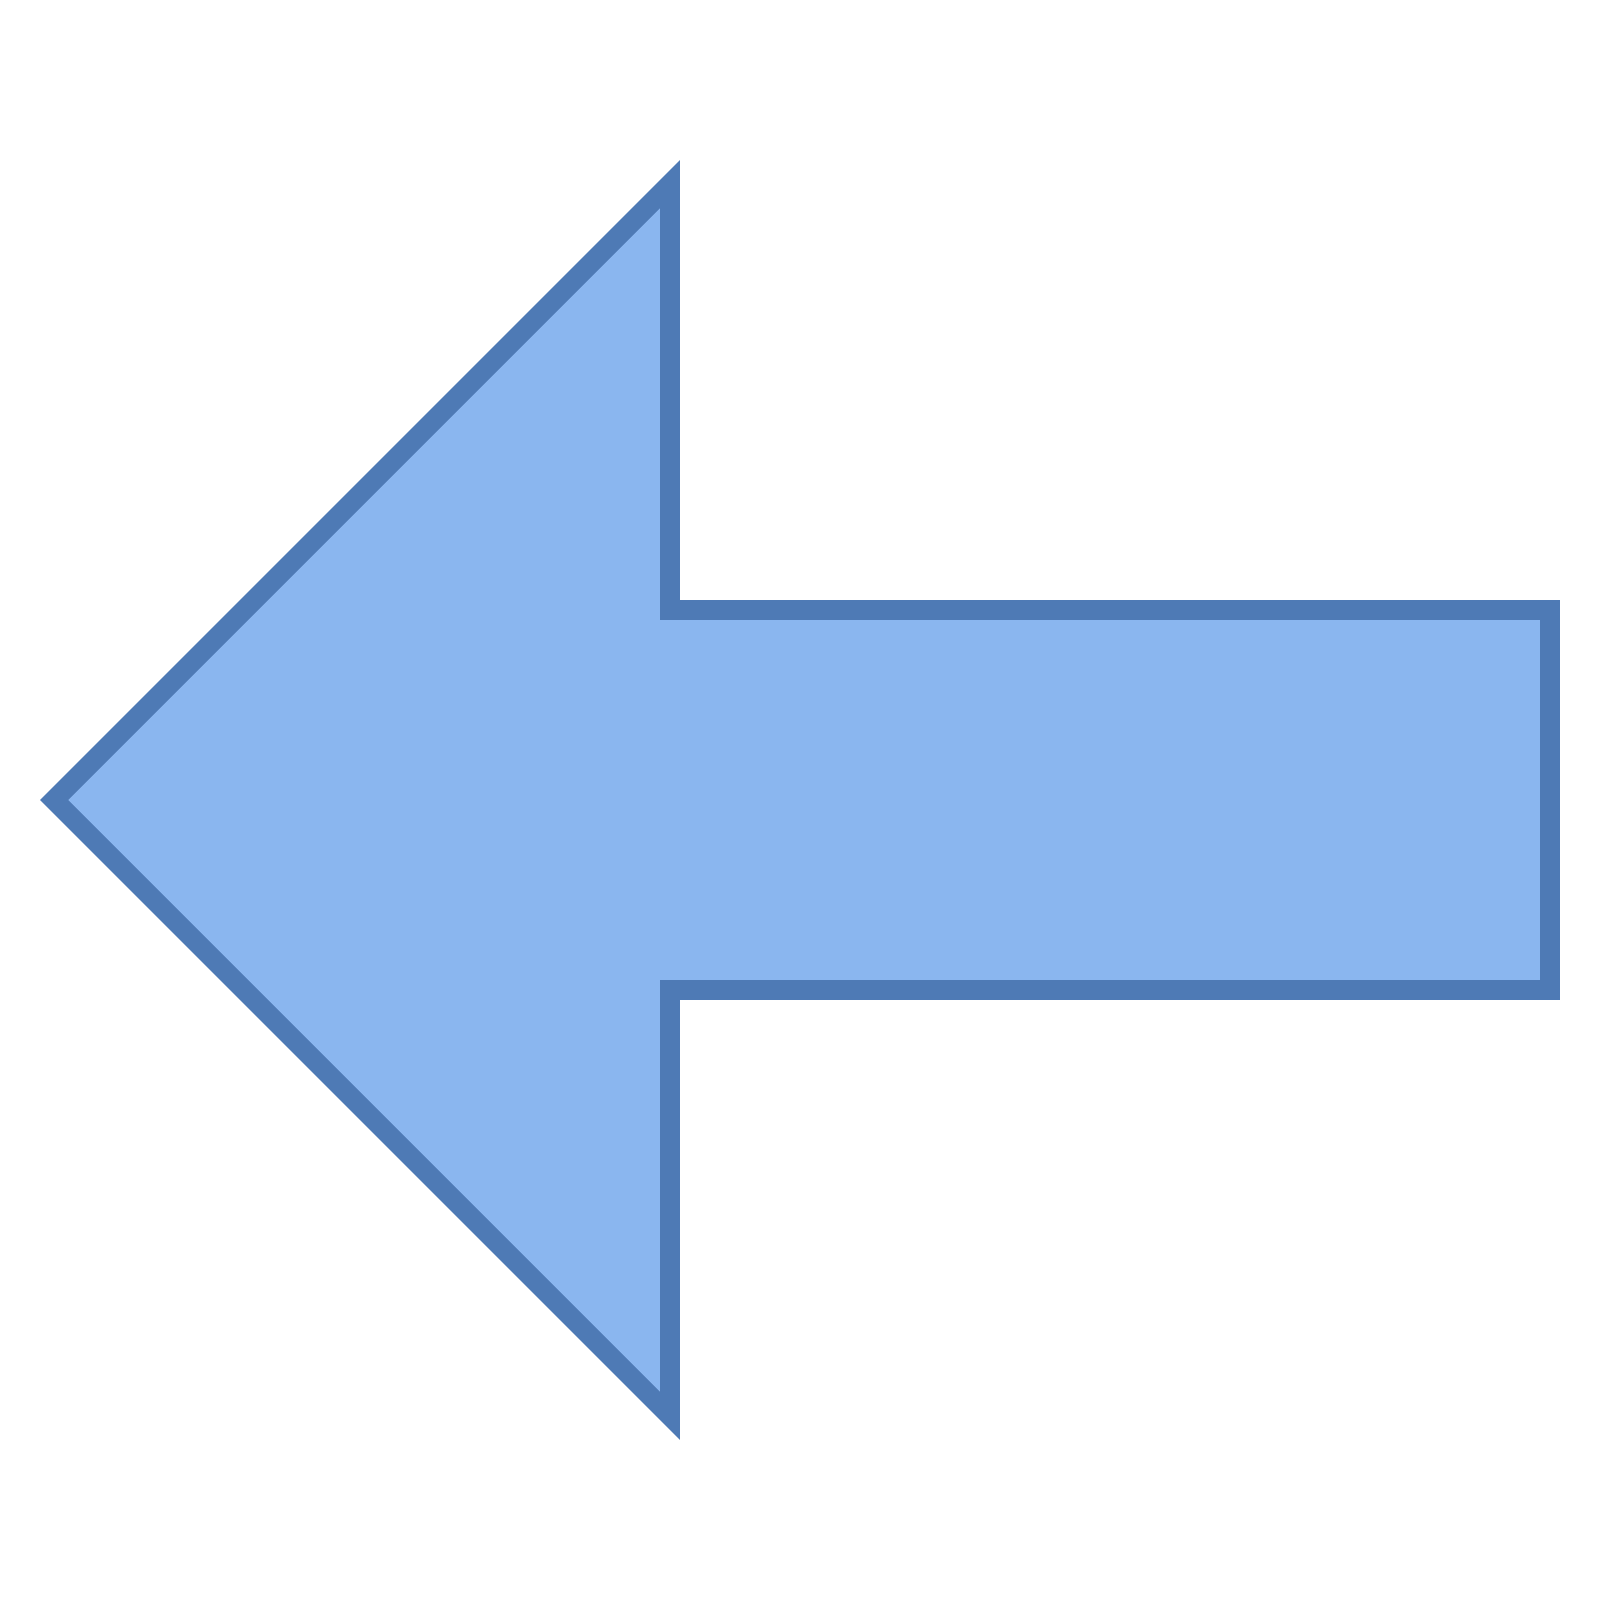 Picture of arrow pointing left banner transparent Arrow Pointing Left Icon - free download, PNG and vector banner transparent